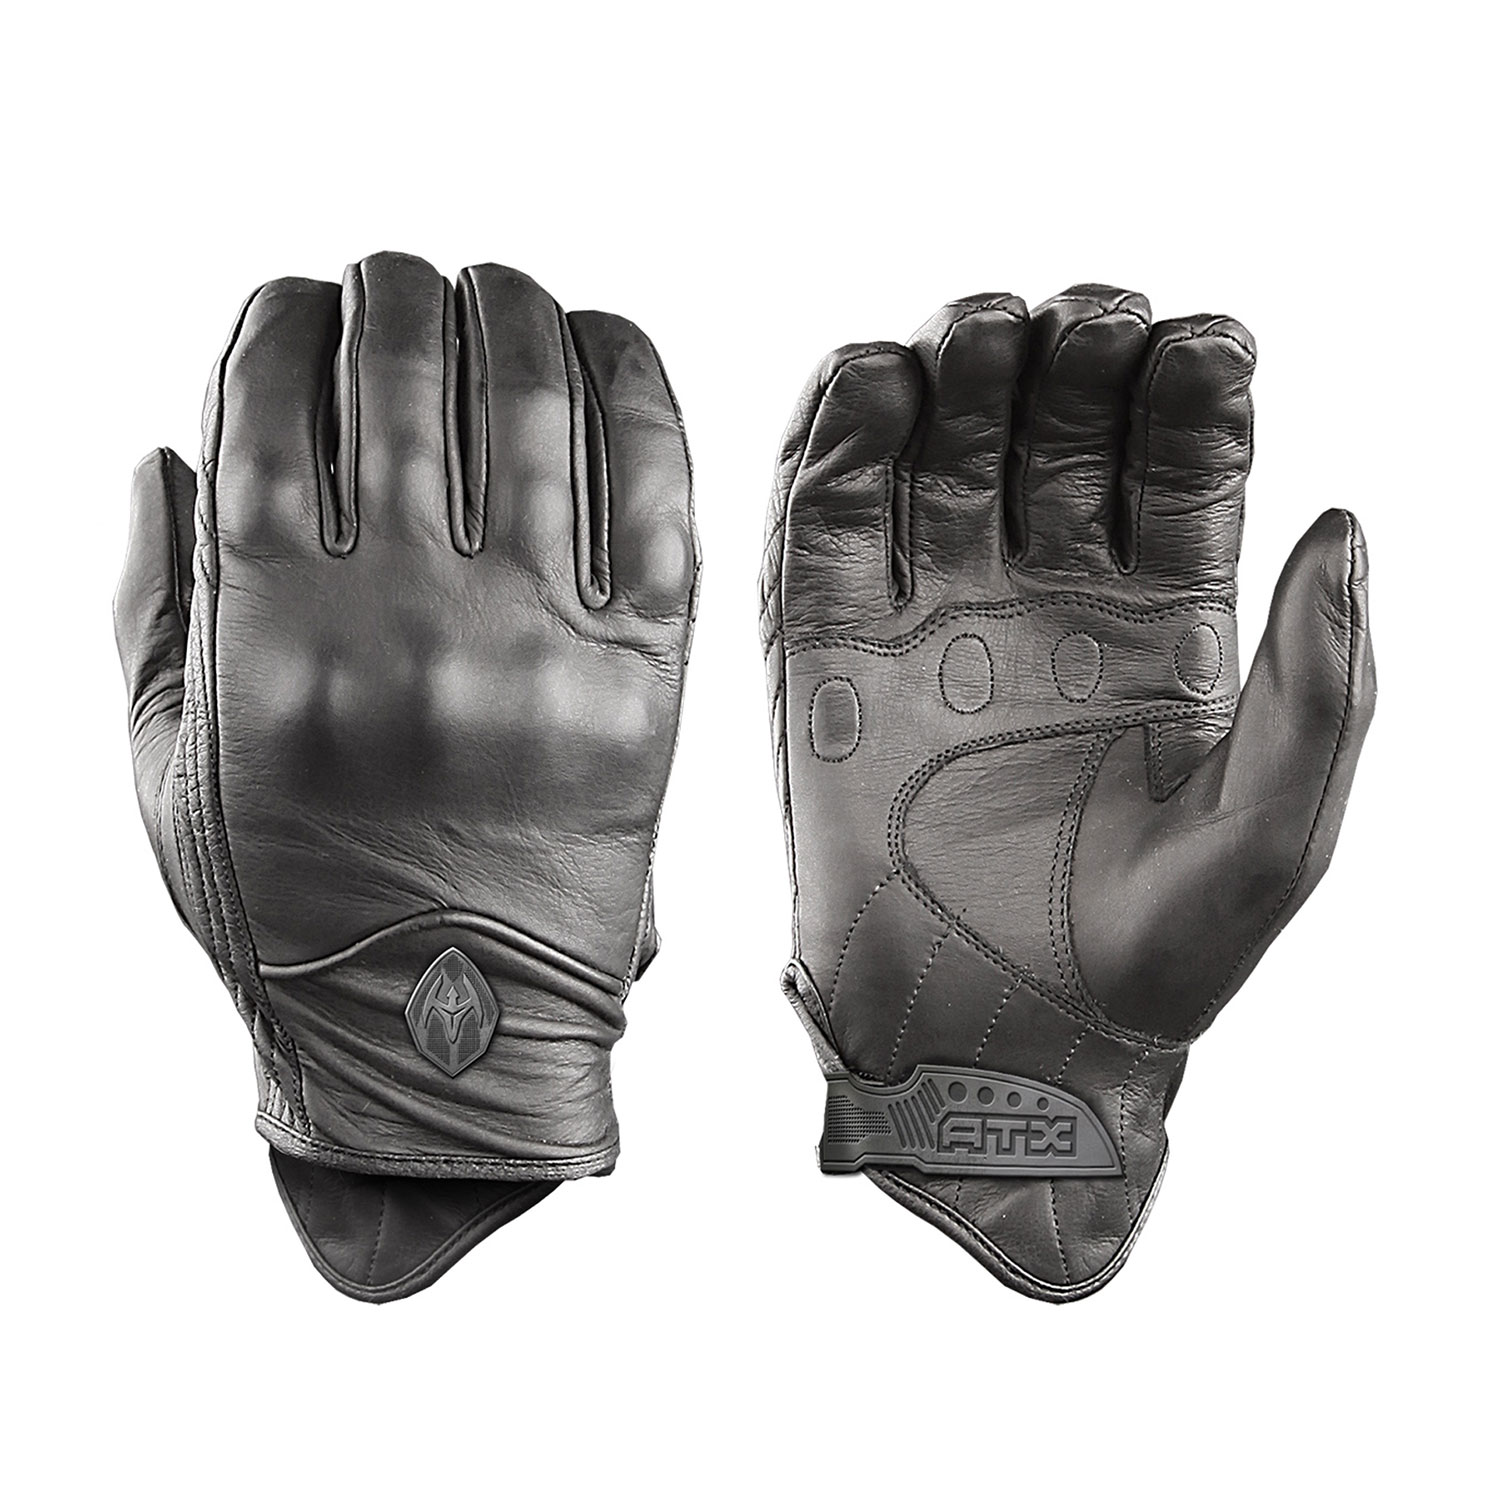 Xs black leather gloves - Damascus All Leather Gloves With Knuckle Armor